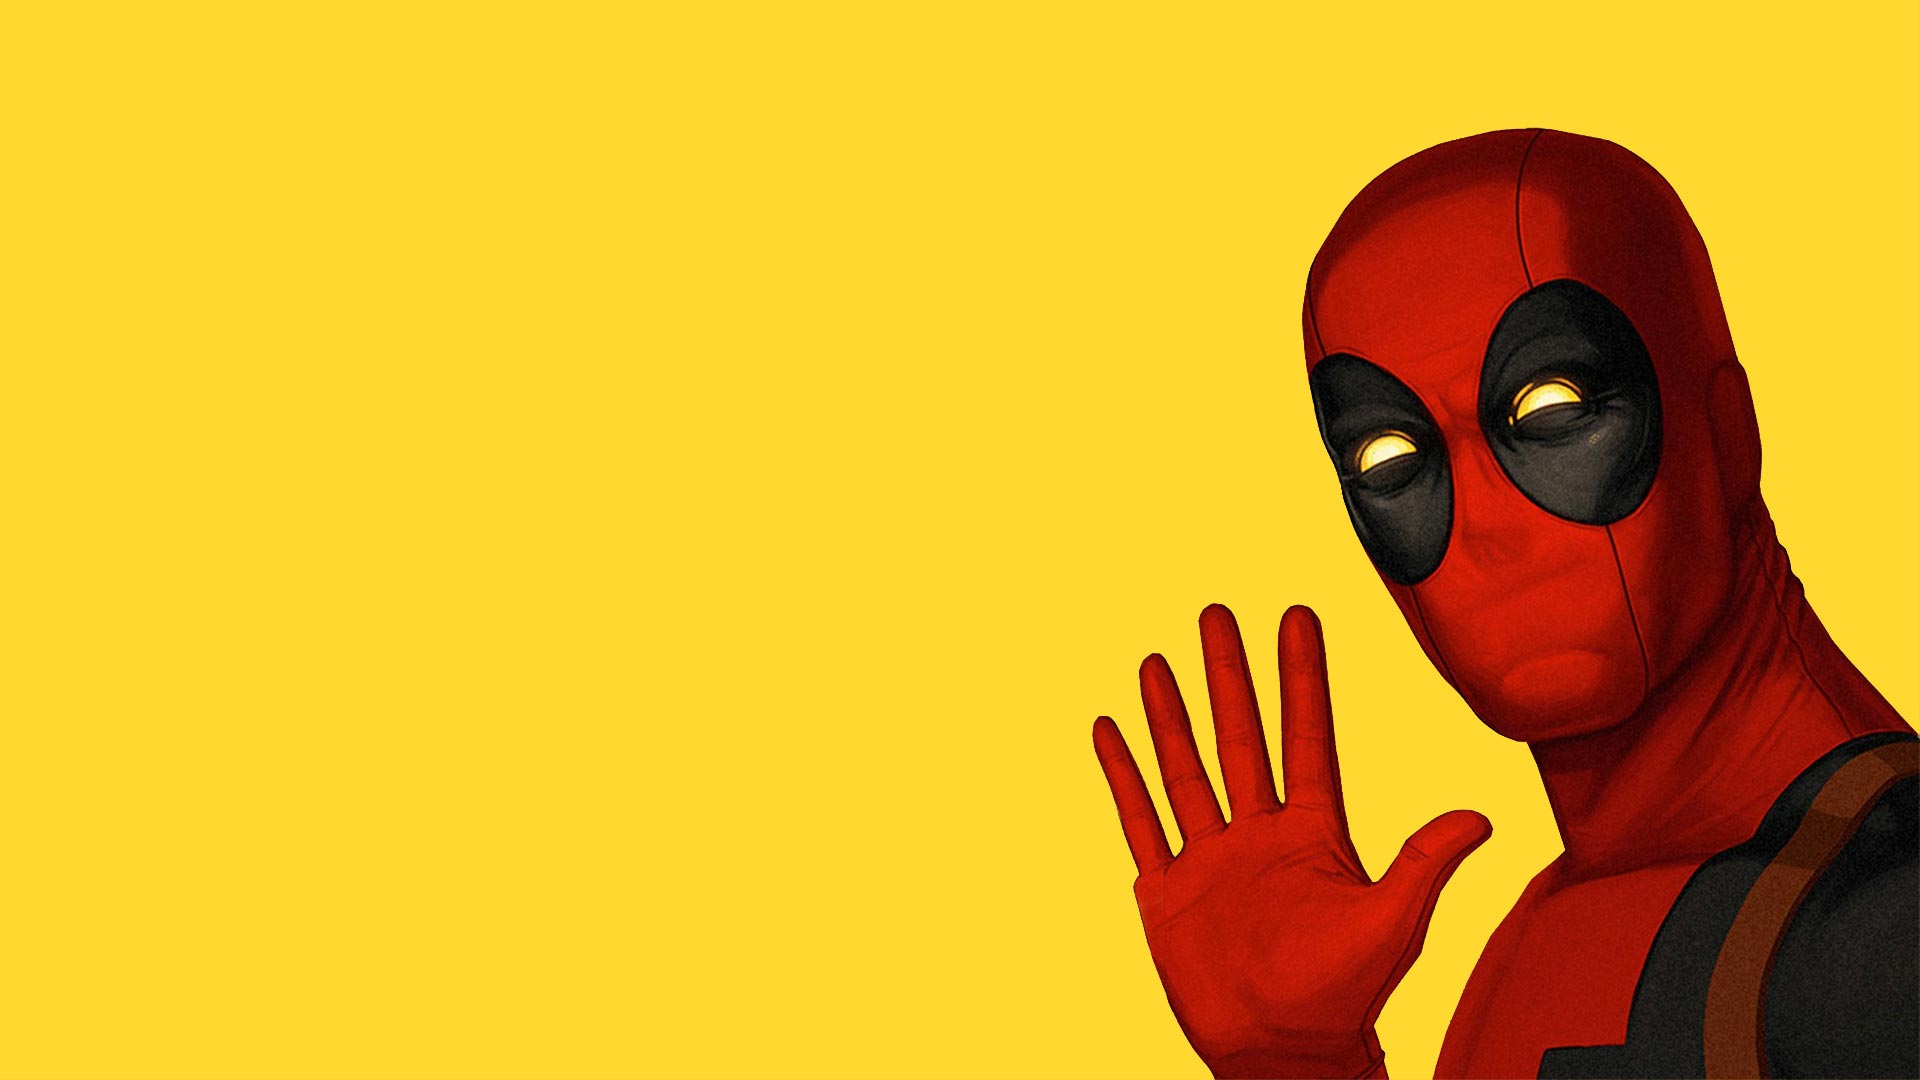 Top Wallpaper Marvel Windows 10 - feat-may-1-5  You Should Have_307056.jpg